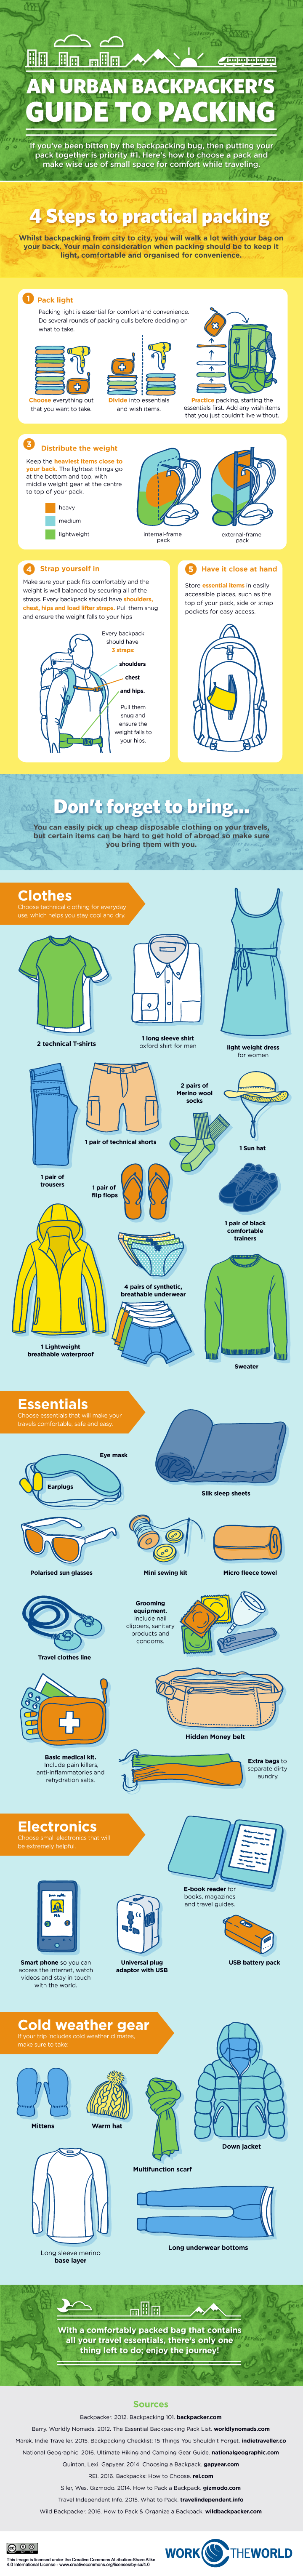 Backpackers Guide to Packing [Infographic]